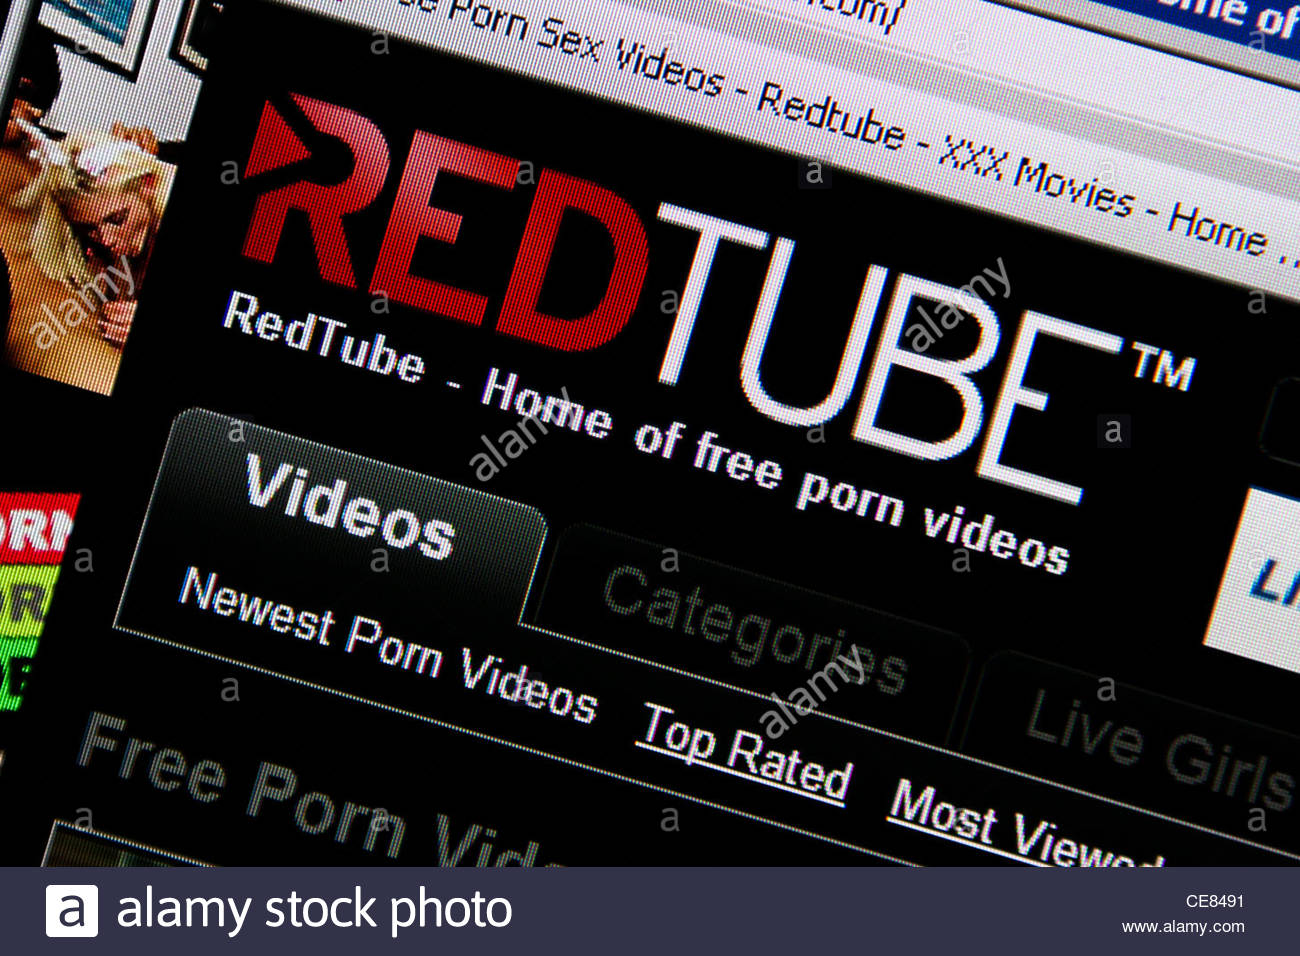 red tube adult